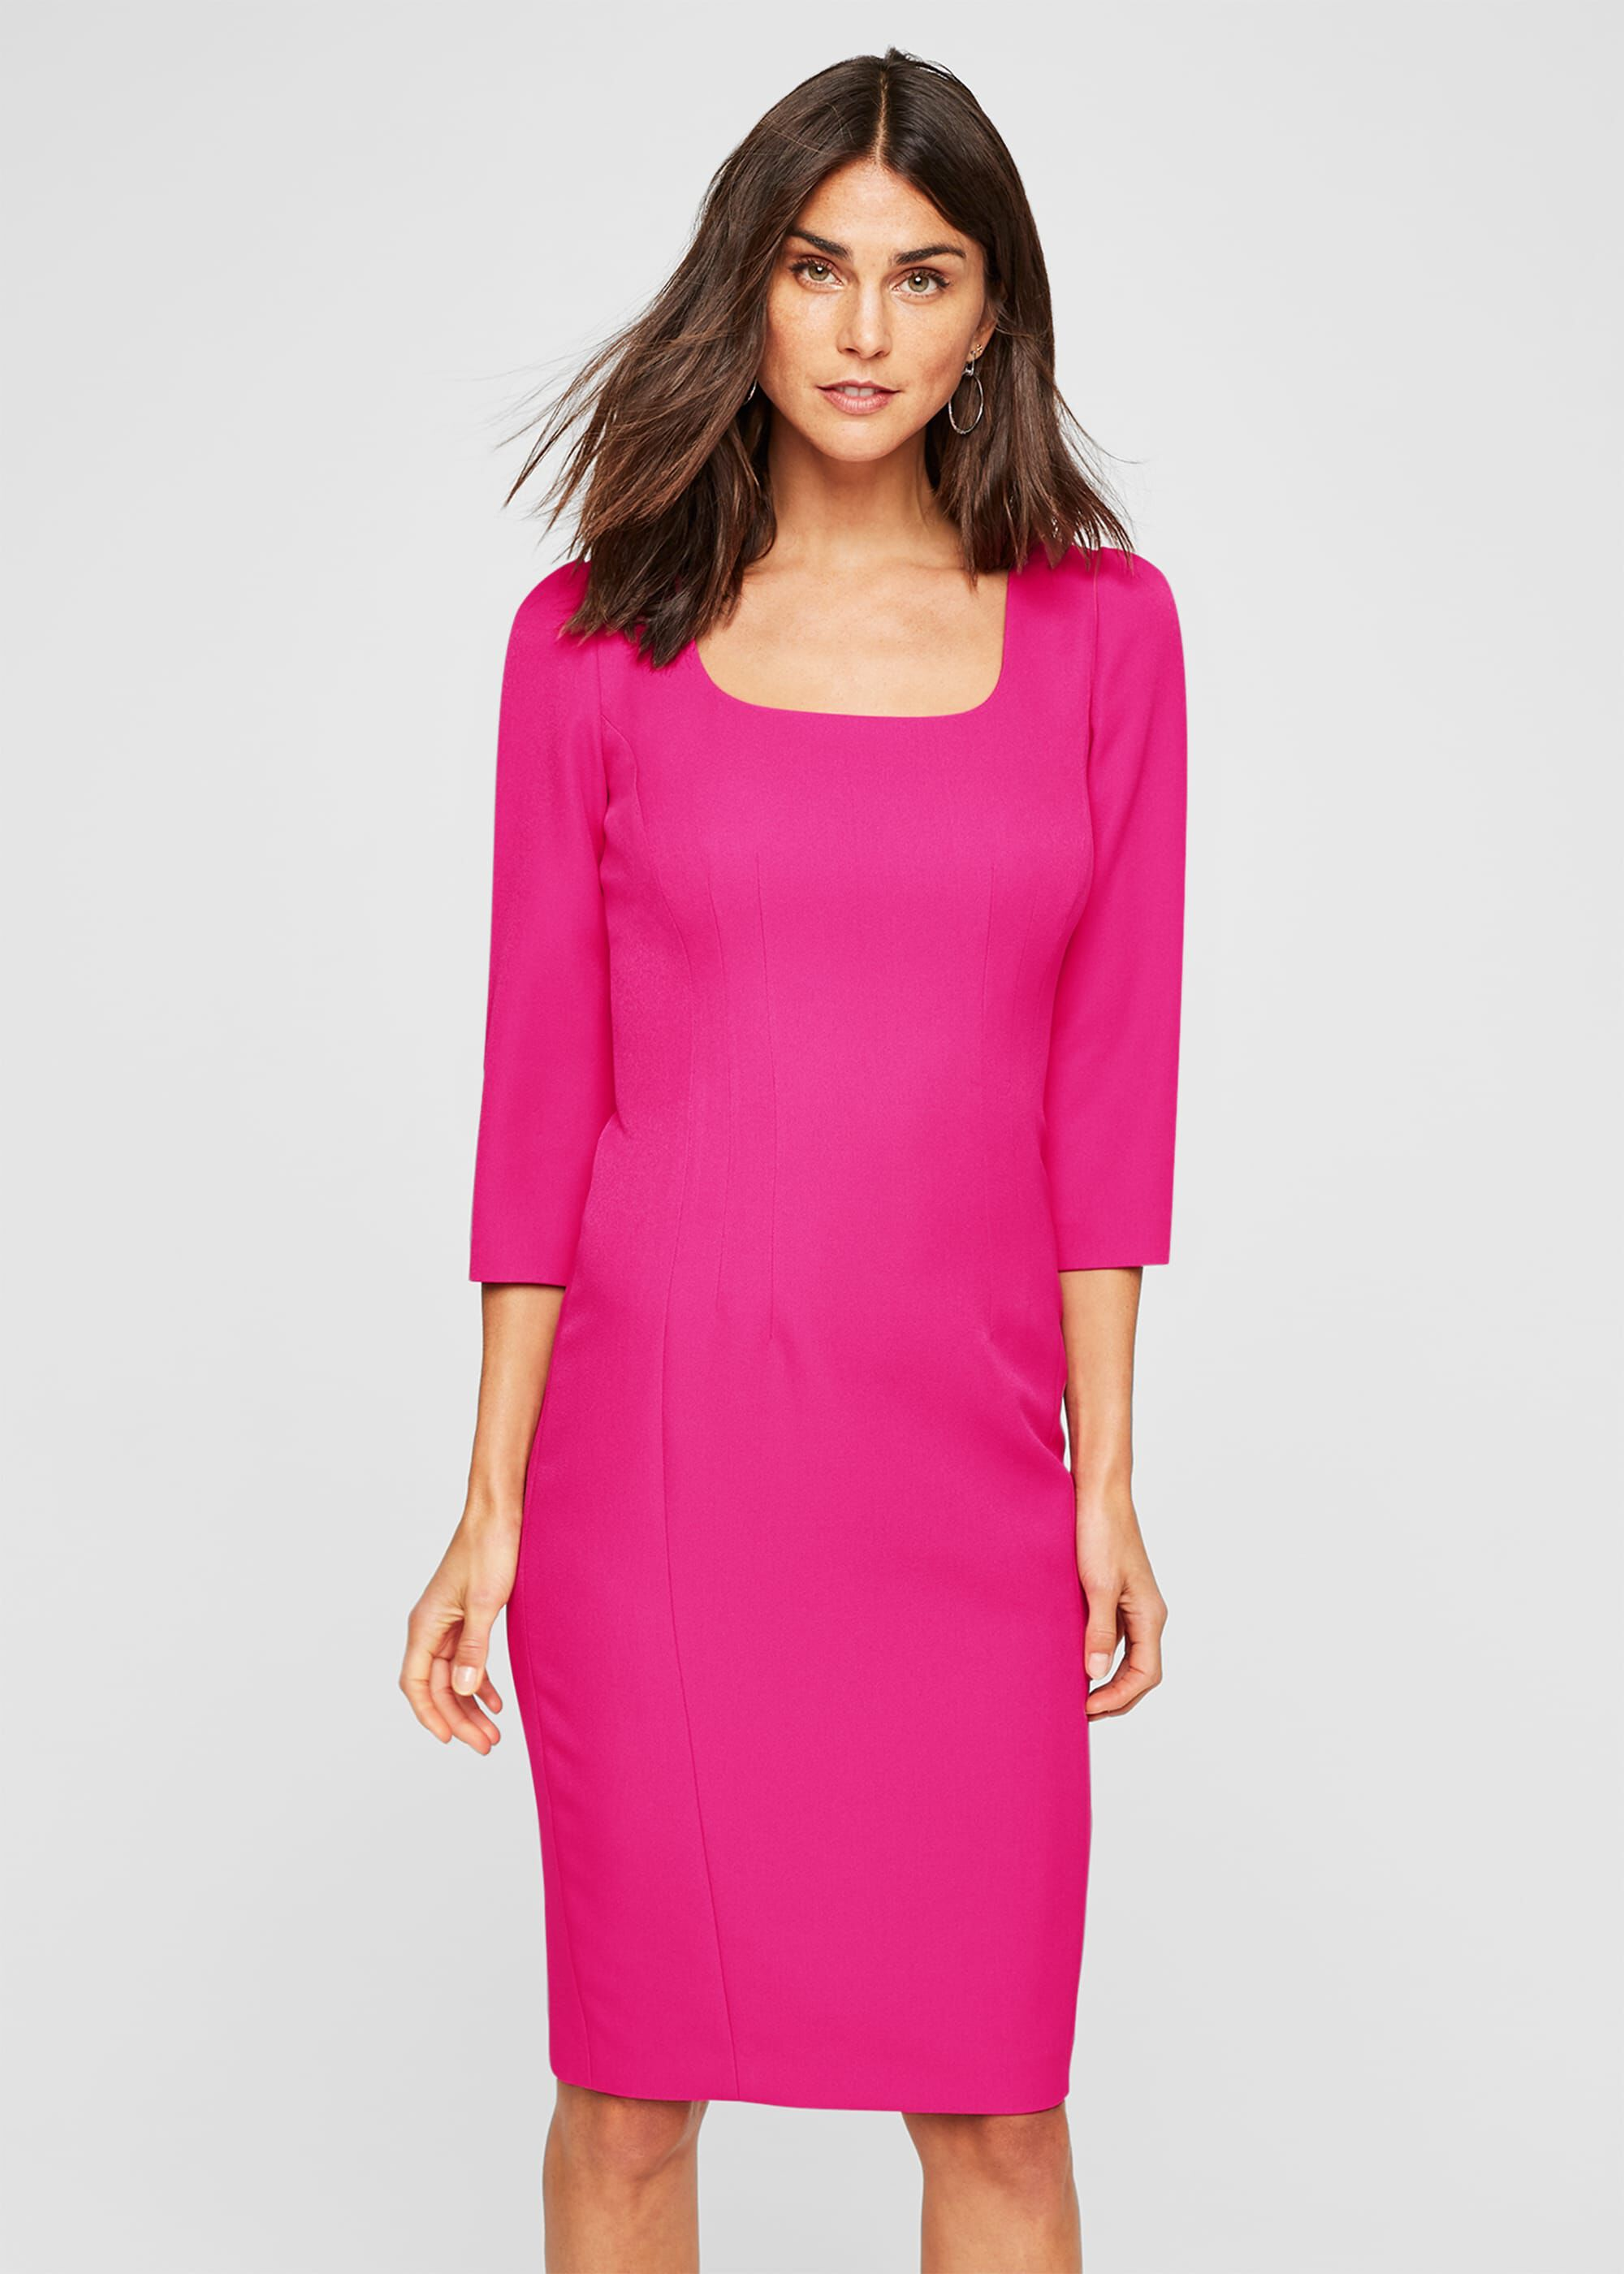 Damsel in a Dress Sheridan Sleeved Dress, Pink